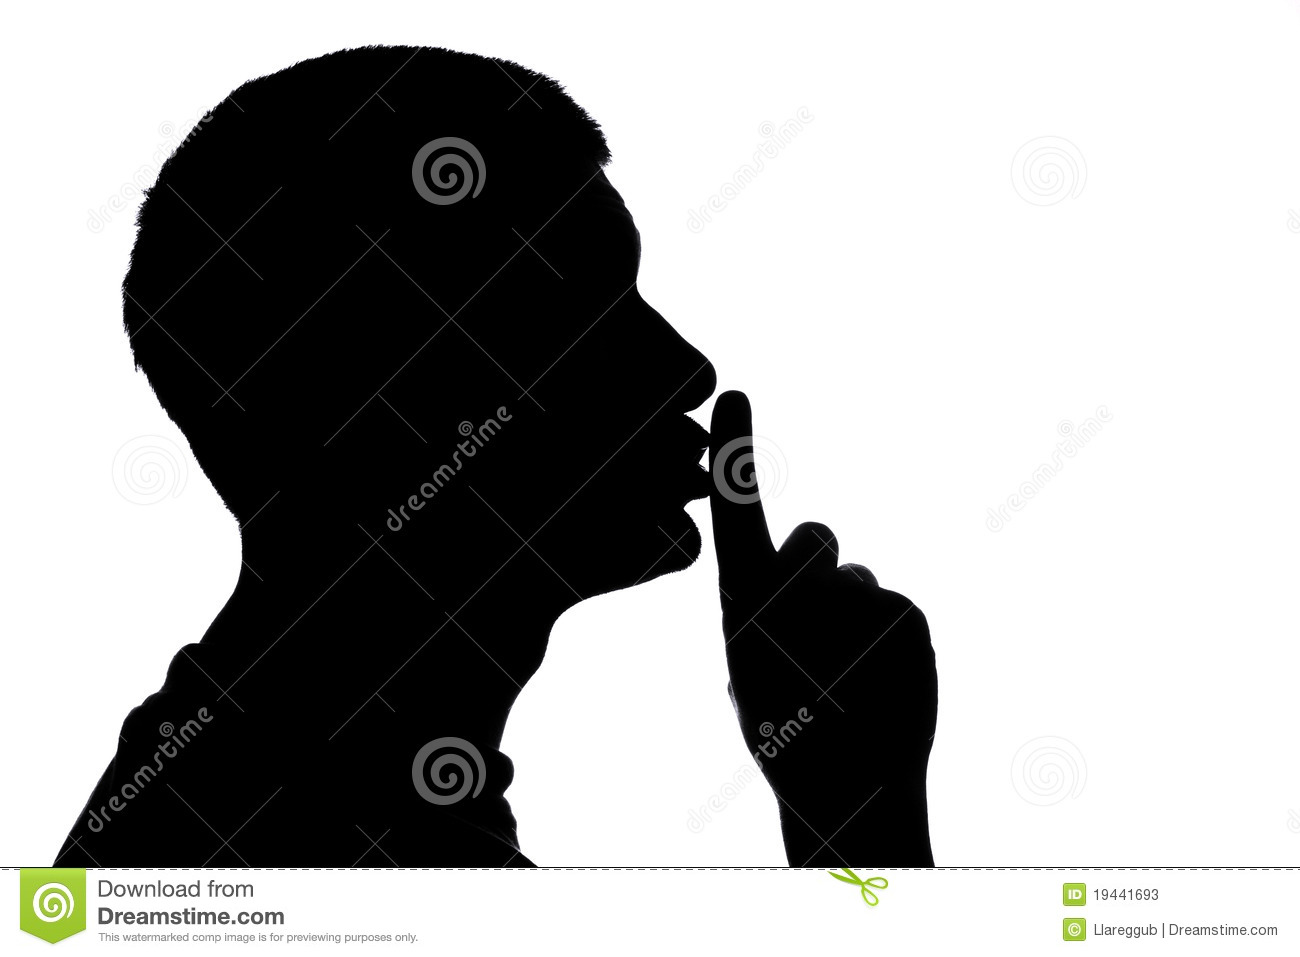 Quiet Please stock image. Image of silhouette, male ...